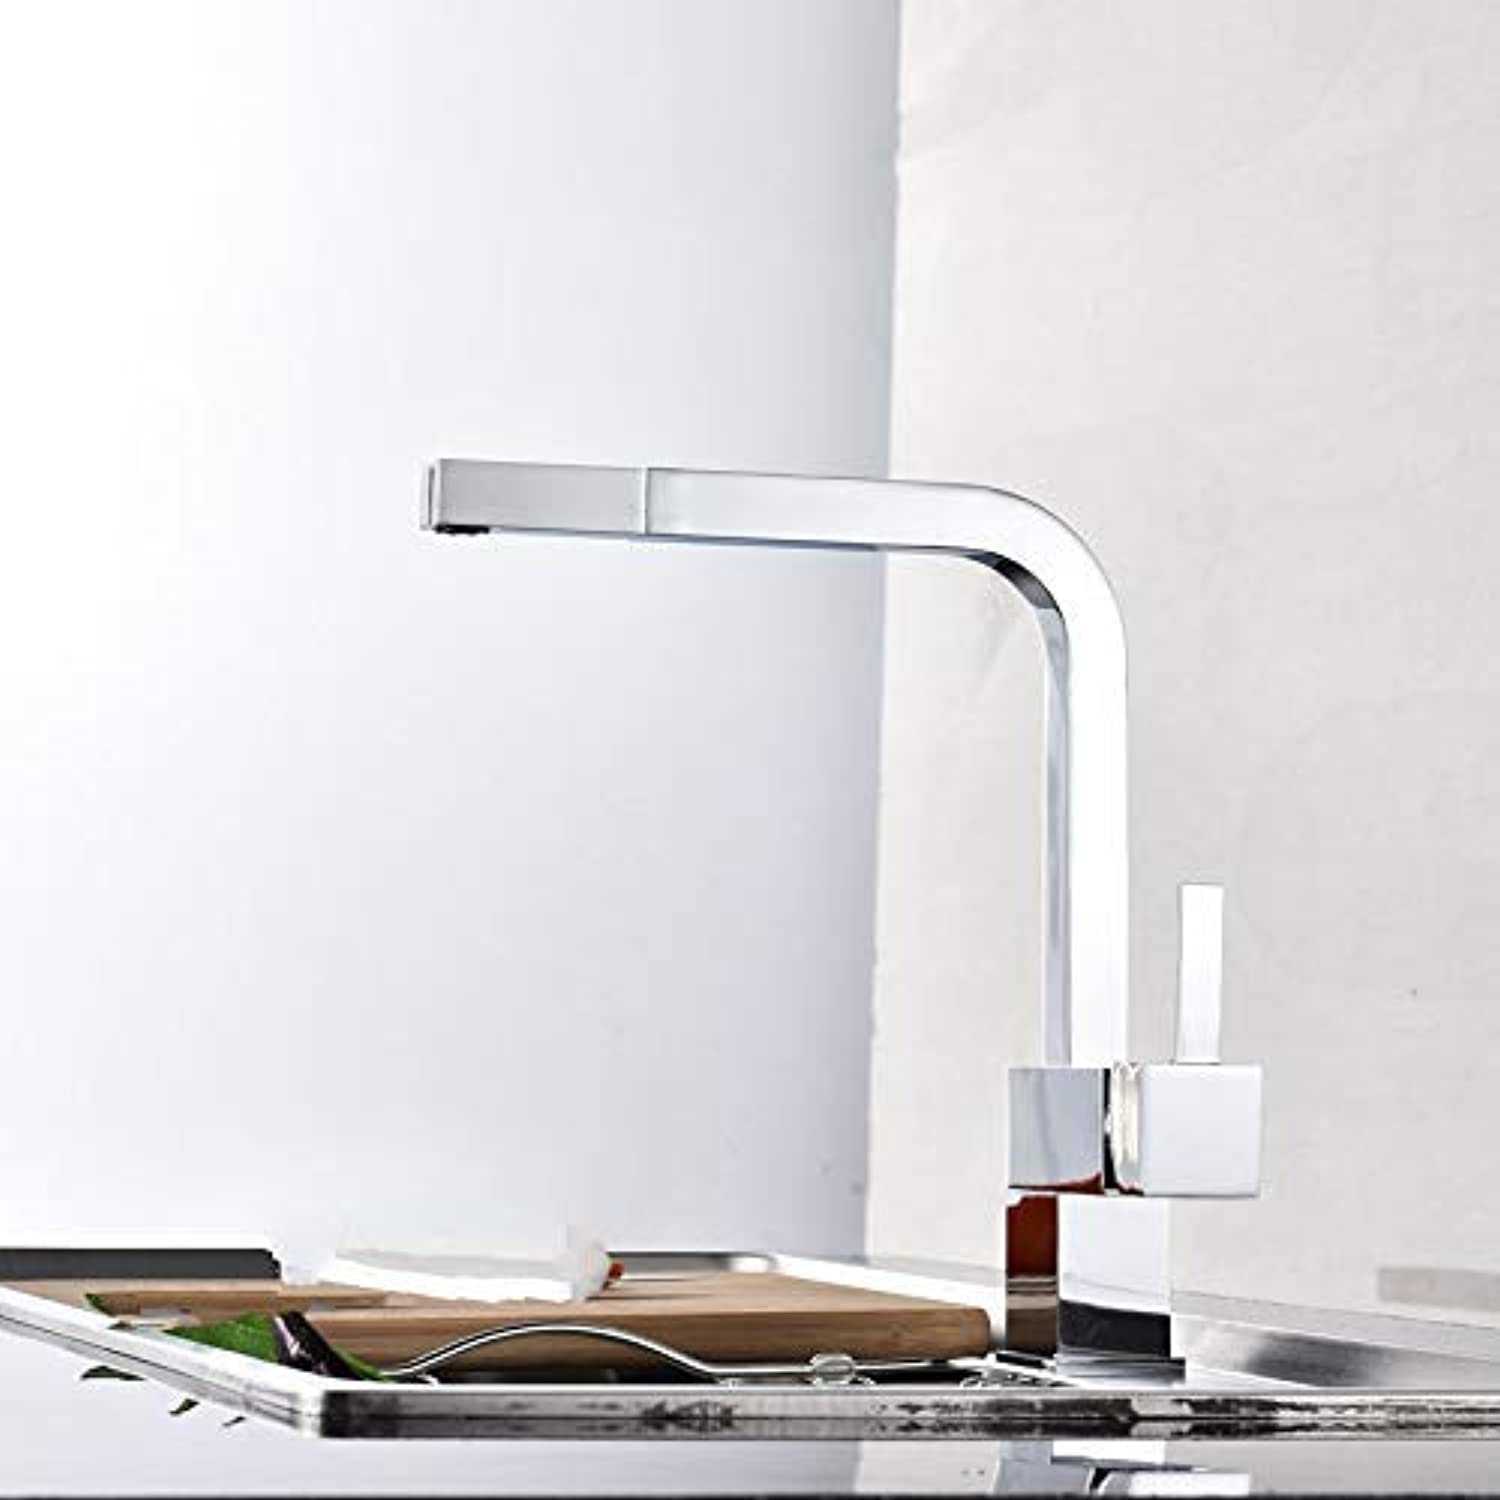 XINXI HOME Kitchen sink full copper pull hot and cold dishes kitchen faucet redatable sink faucet mixing valve faucet